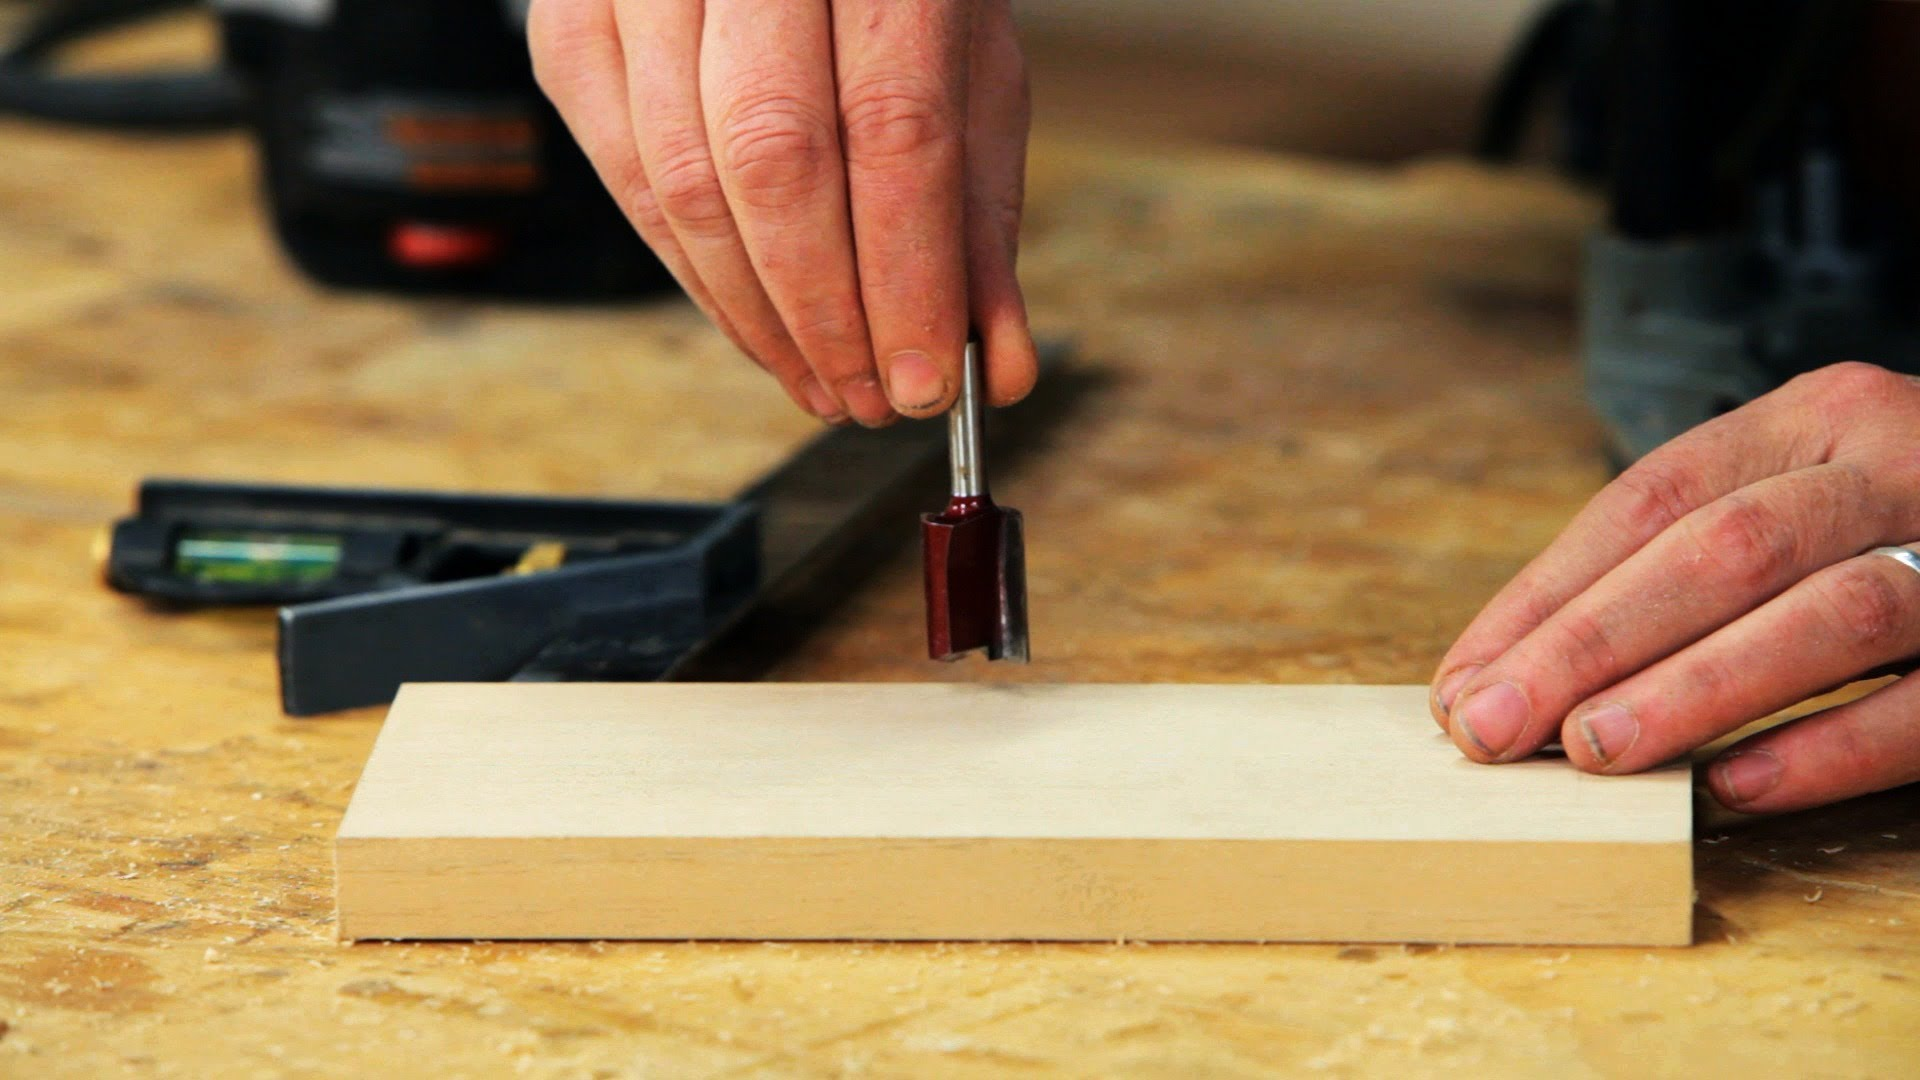 The right way to install a router bit